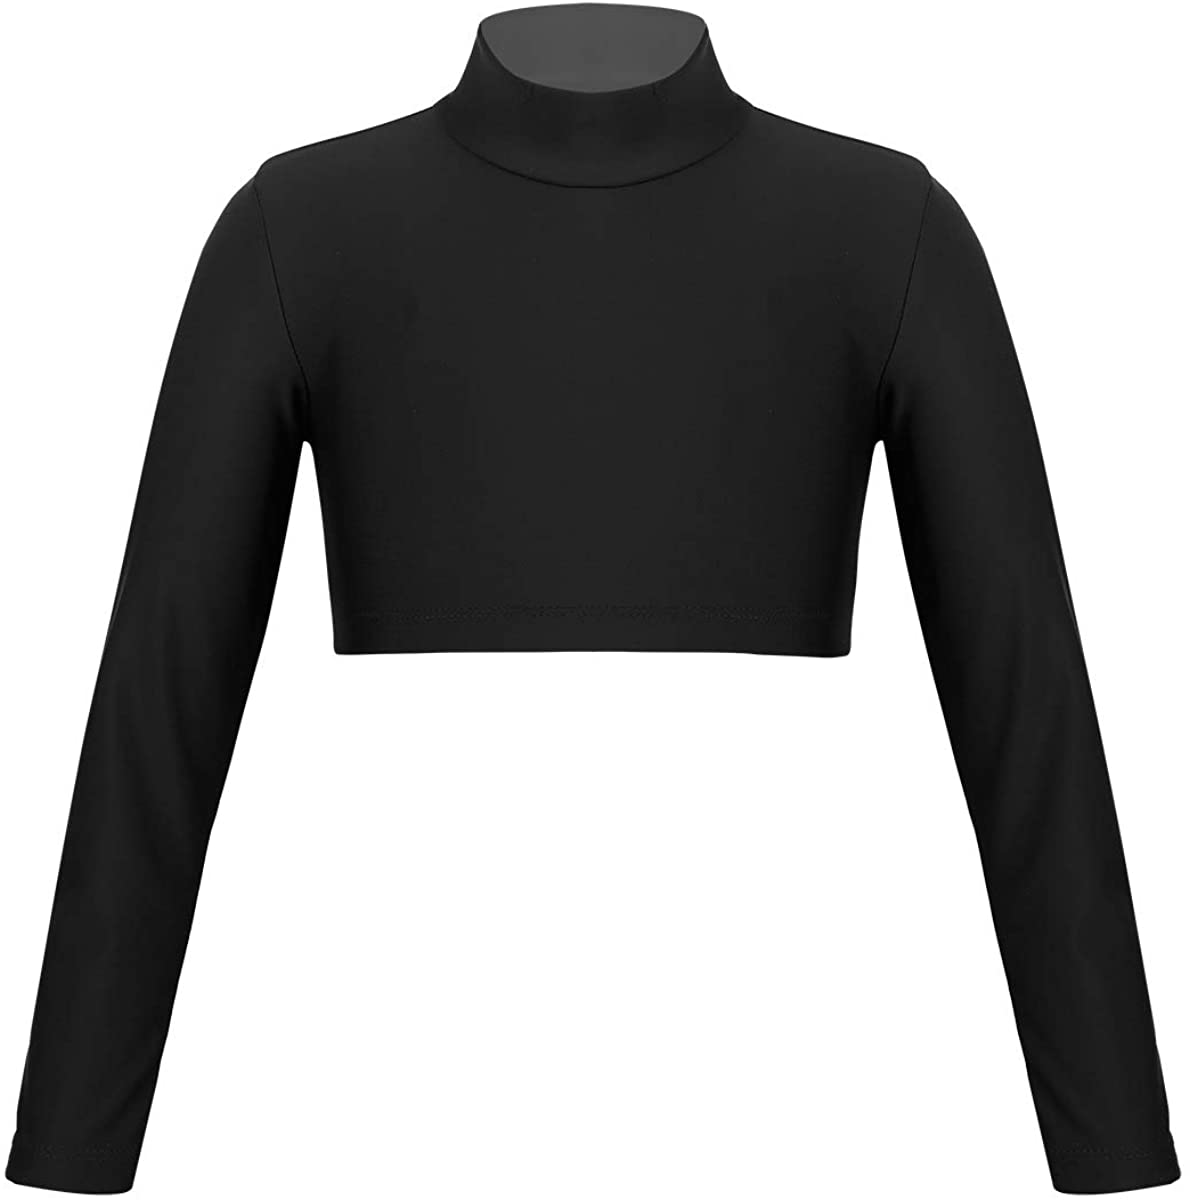 JanJean Girls Athletic Shirt Long Sleeve Cheerleading Top for Ballet Dance Yoga Gymnastic Stage Performance Workout